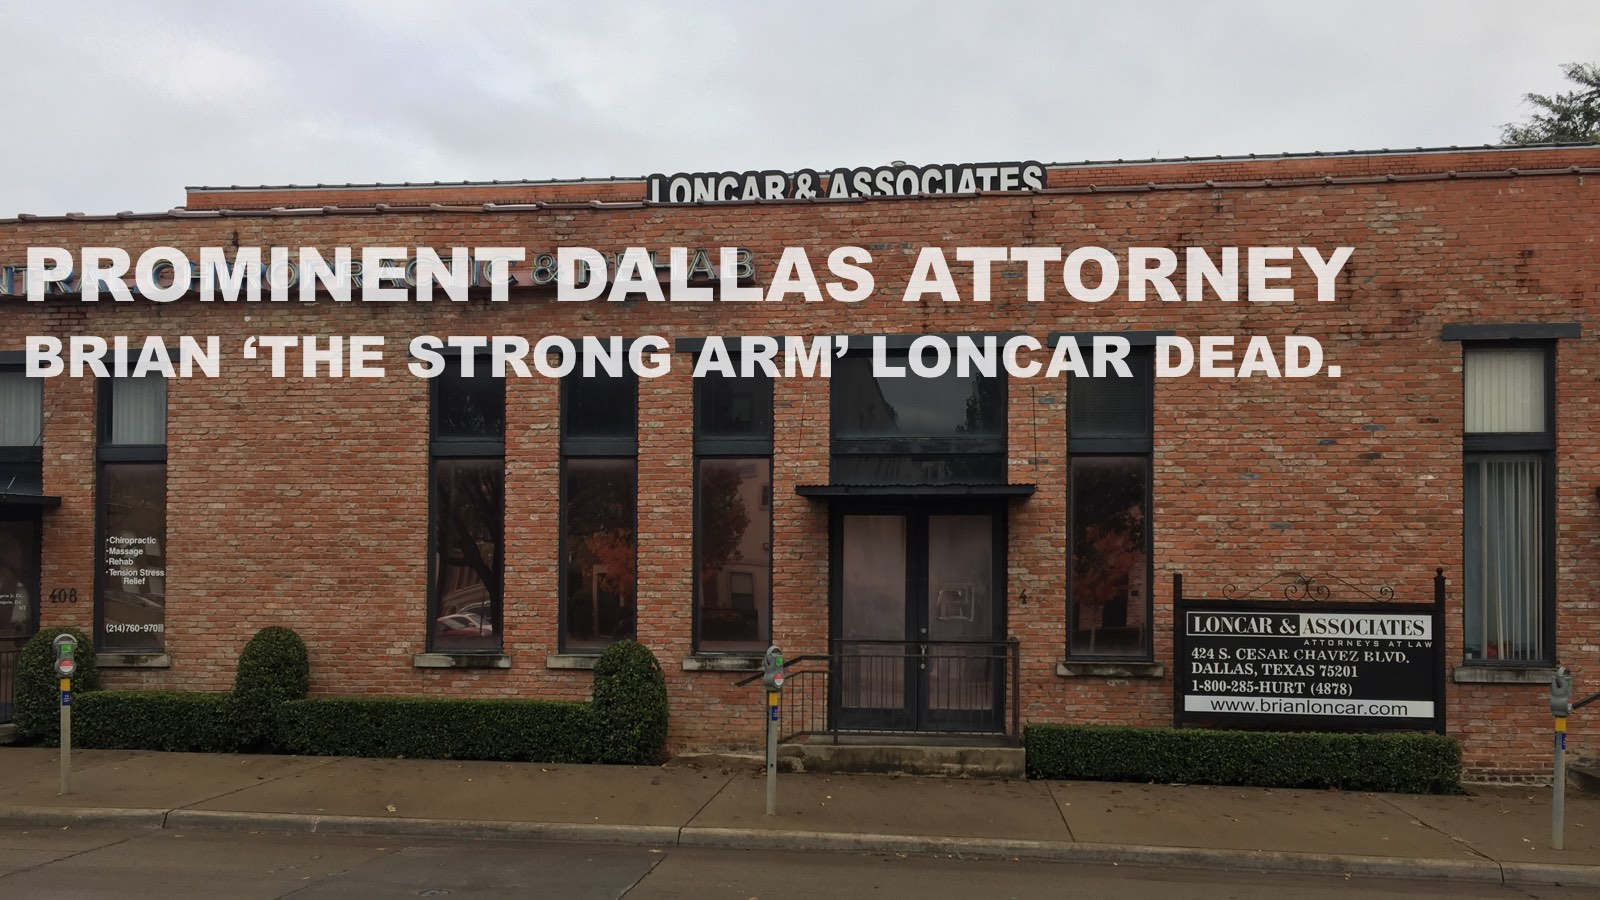 PROMINENT DALLAS ATTORNEY BRIAN 'THE STRONG ARM' LONCAR DEAD.